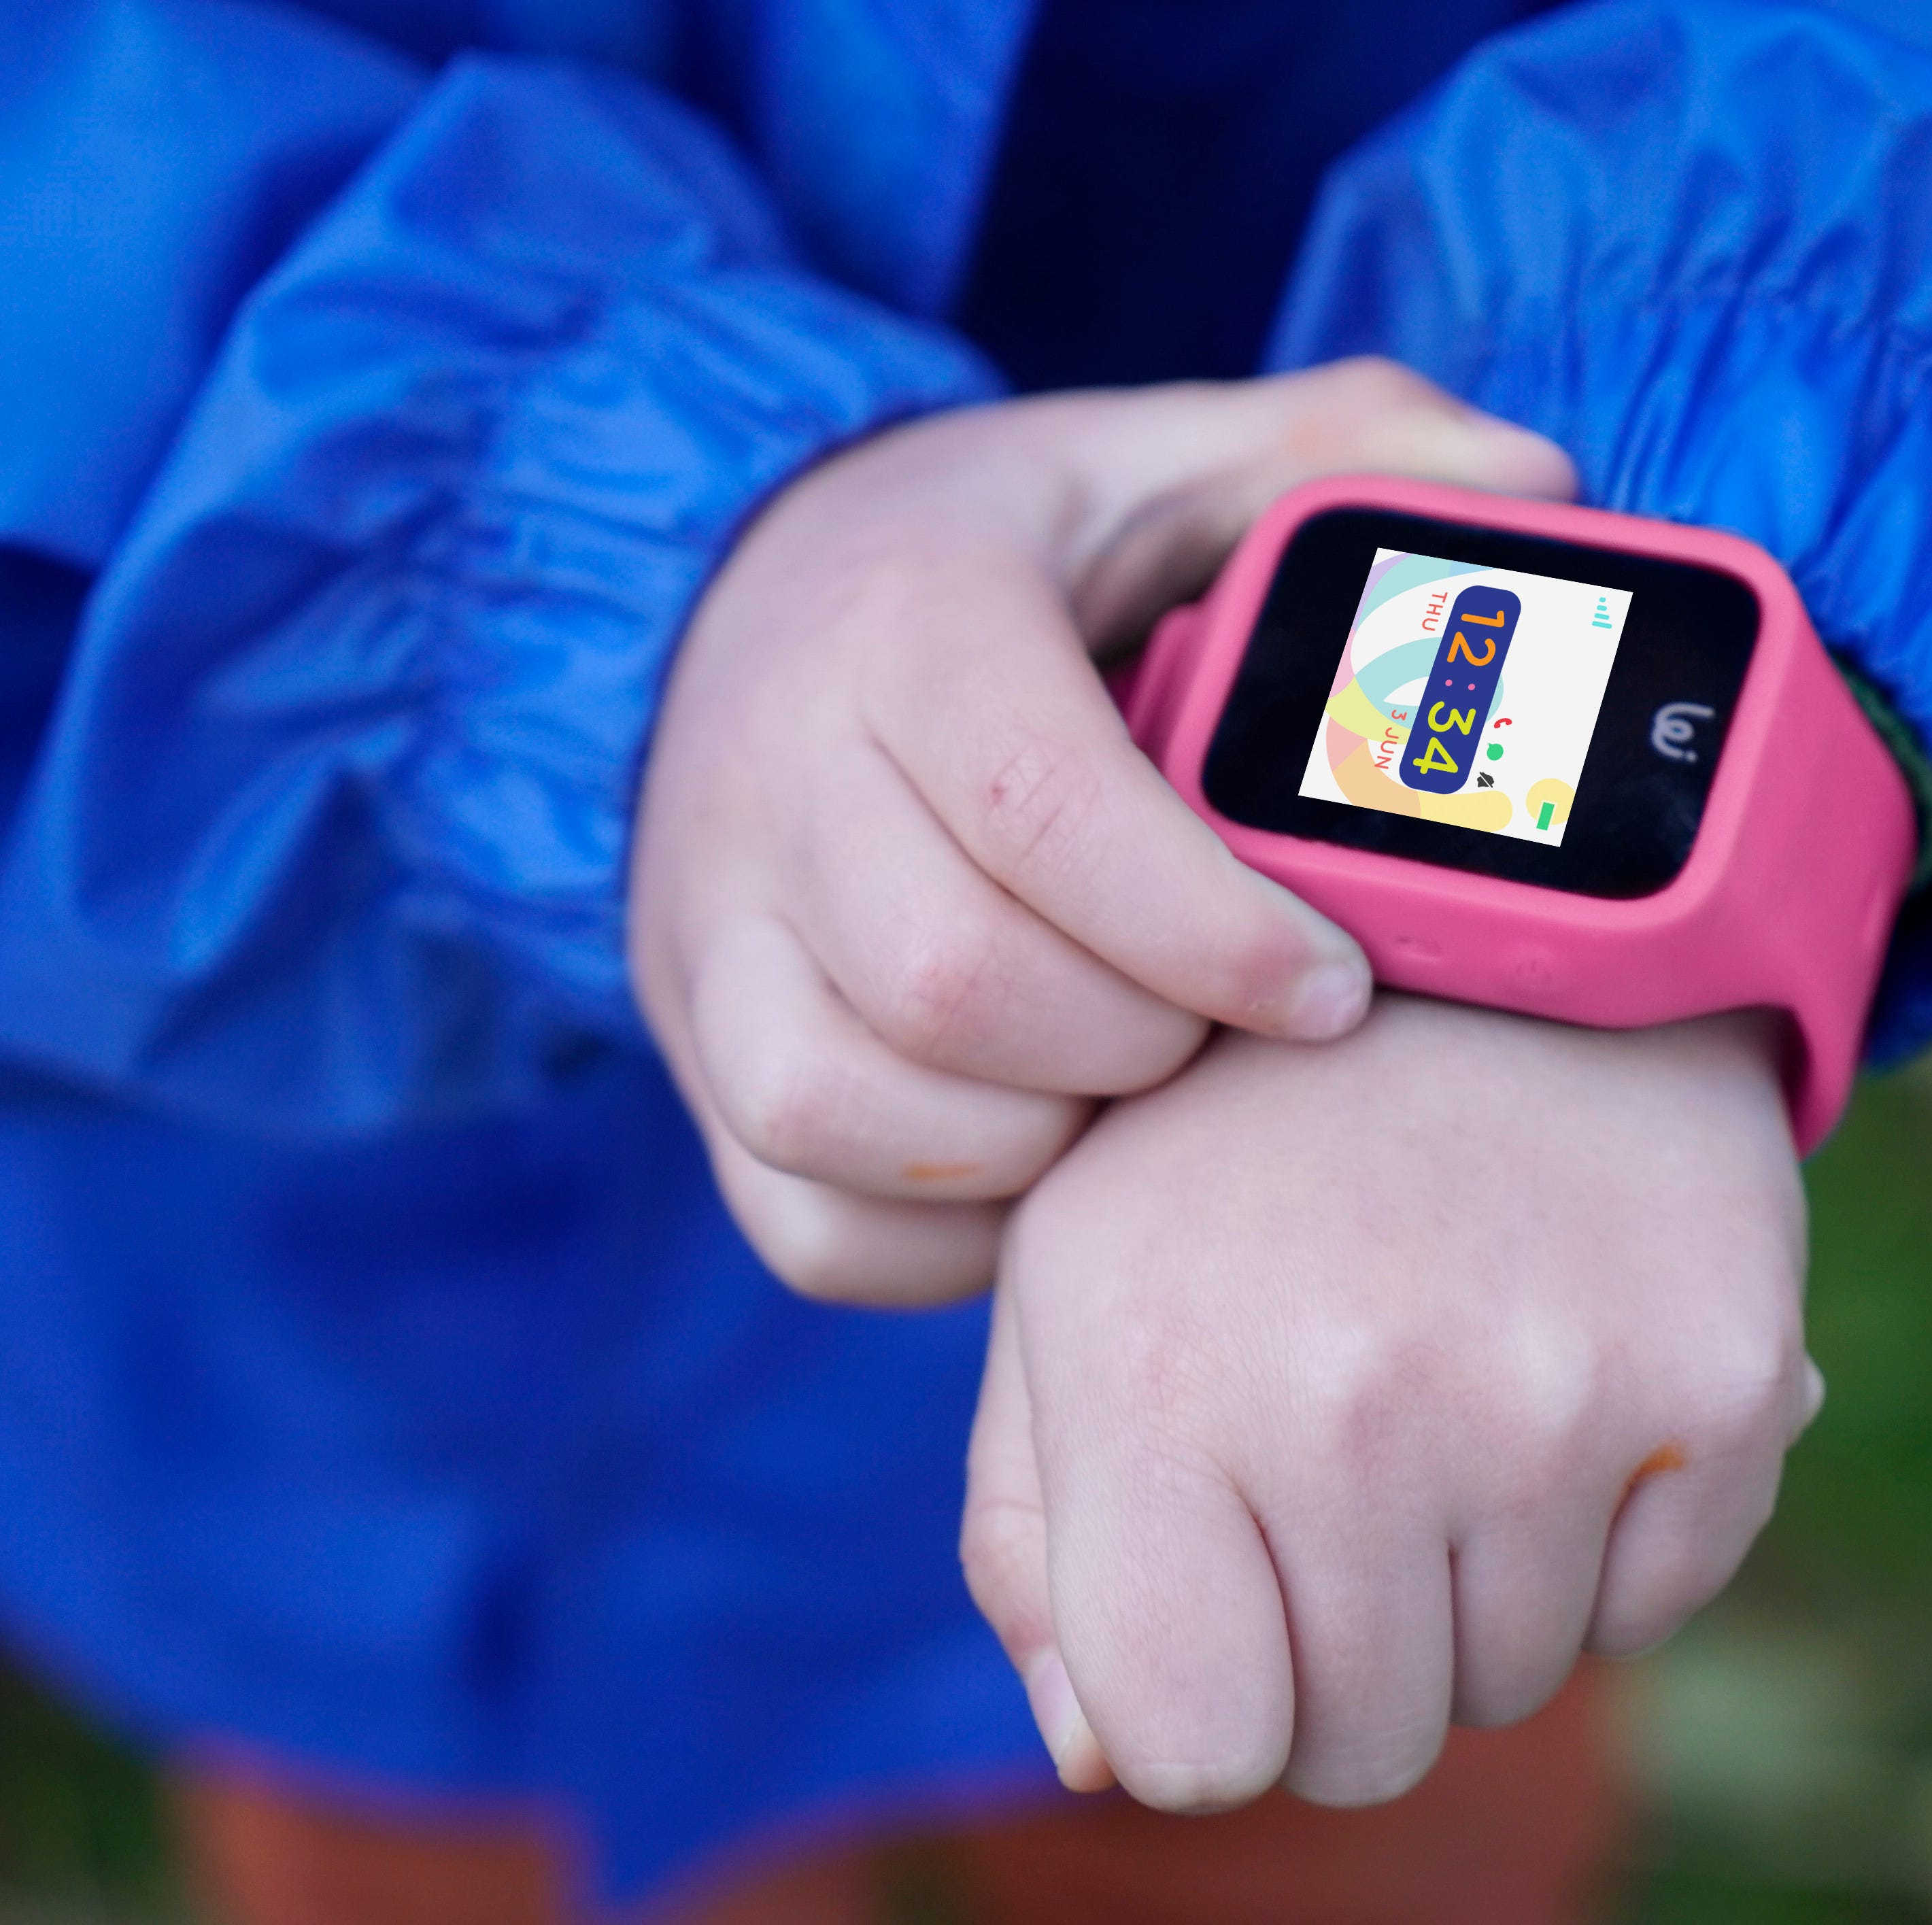 Fort Myers company recognized as a national leader in wearable technology